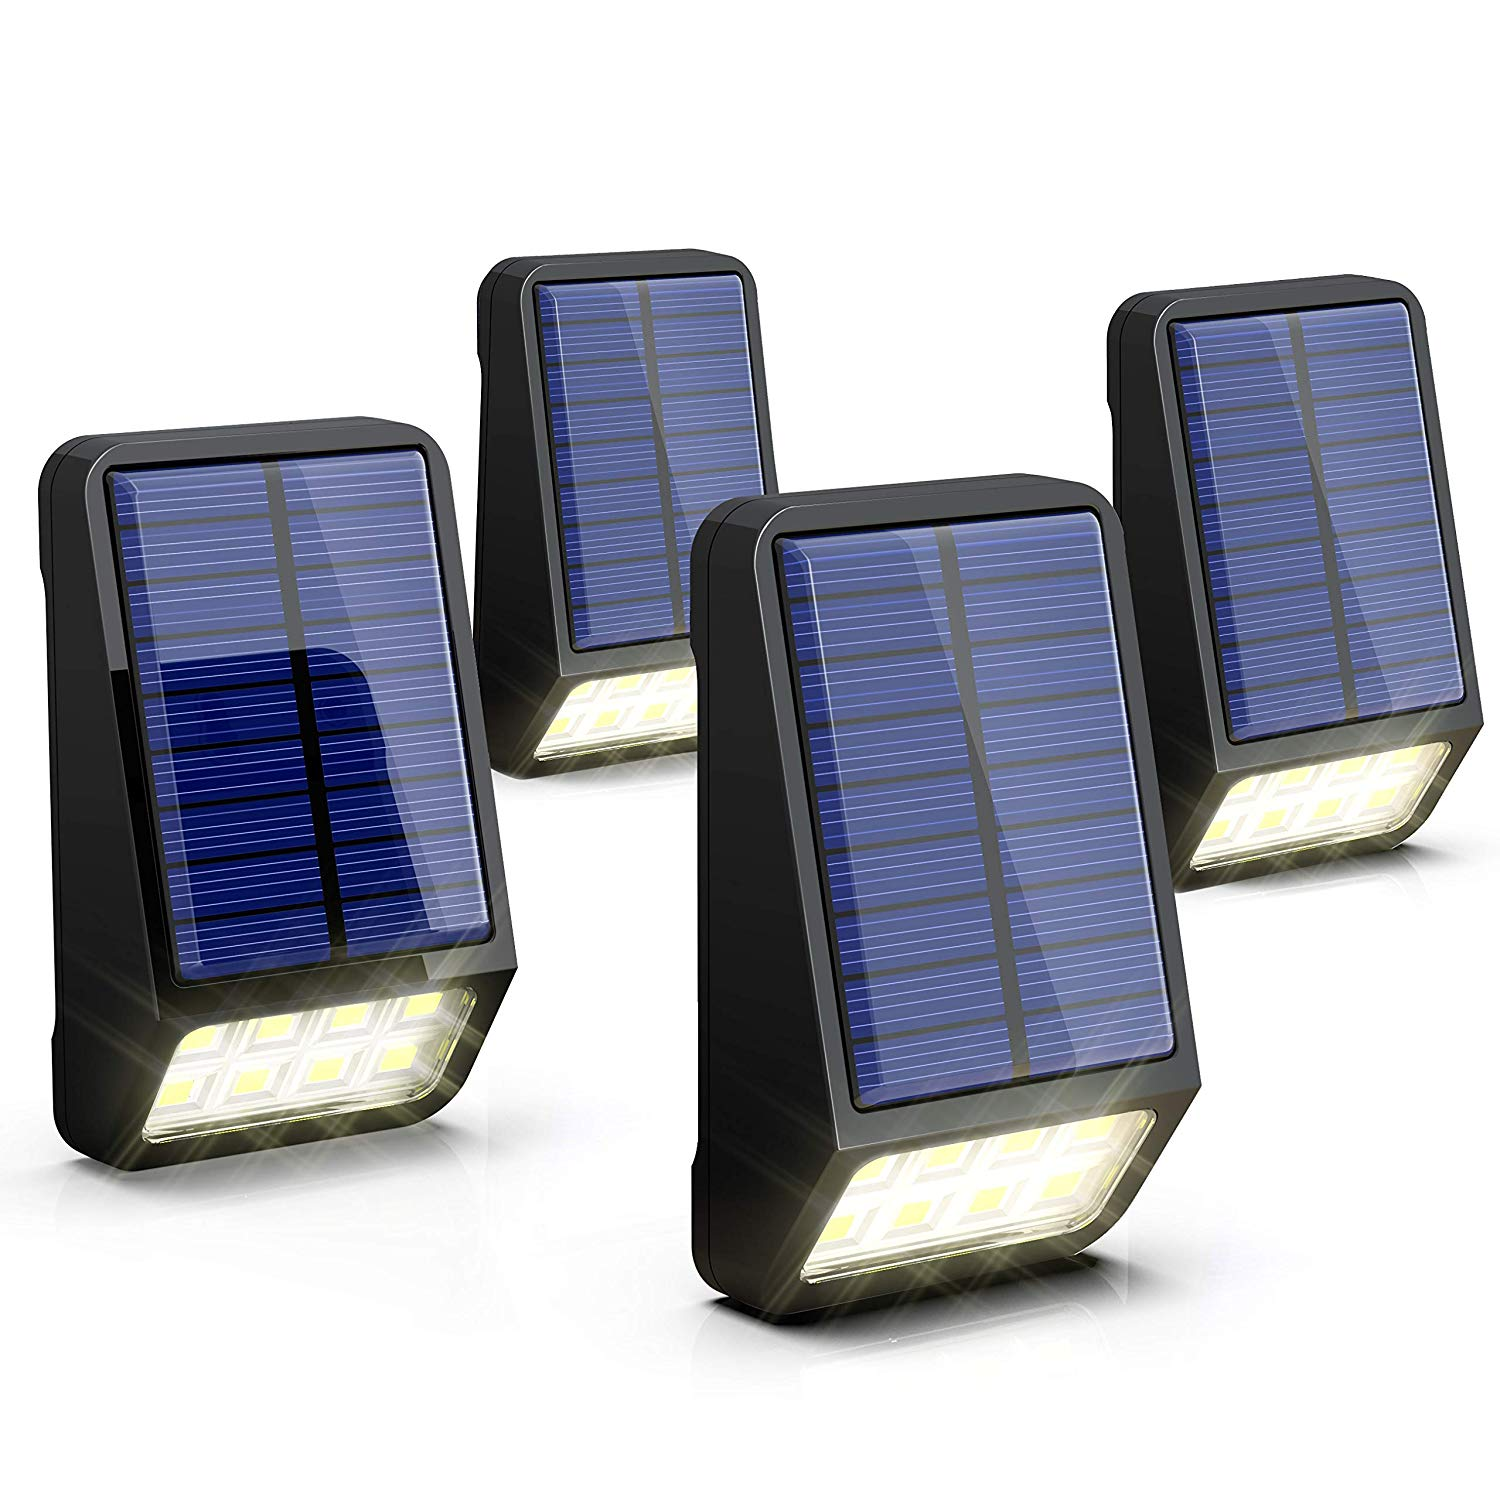 LOHAS Fence Wall Lights, Solar Security Lights Outdoor